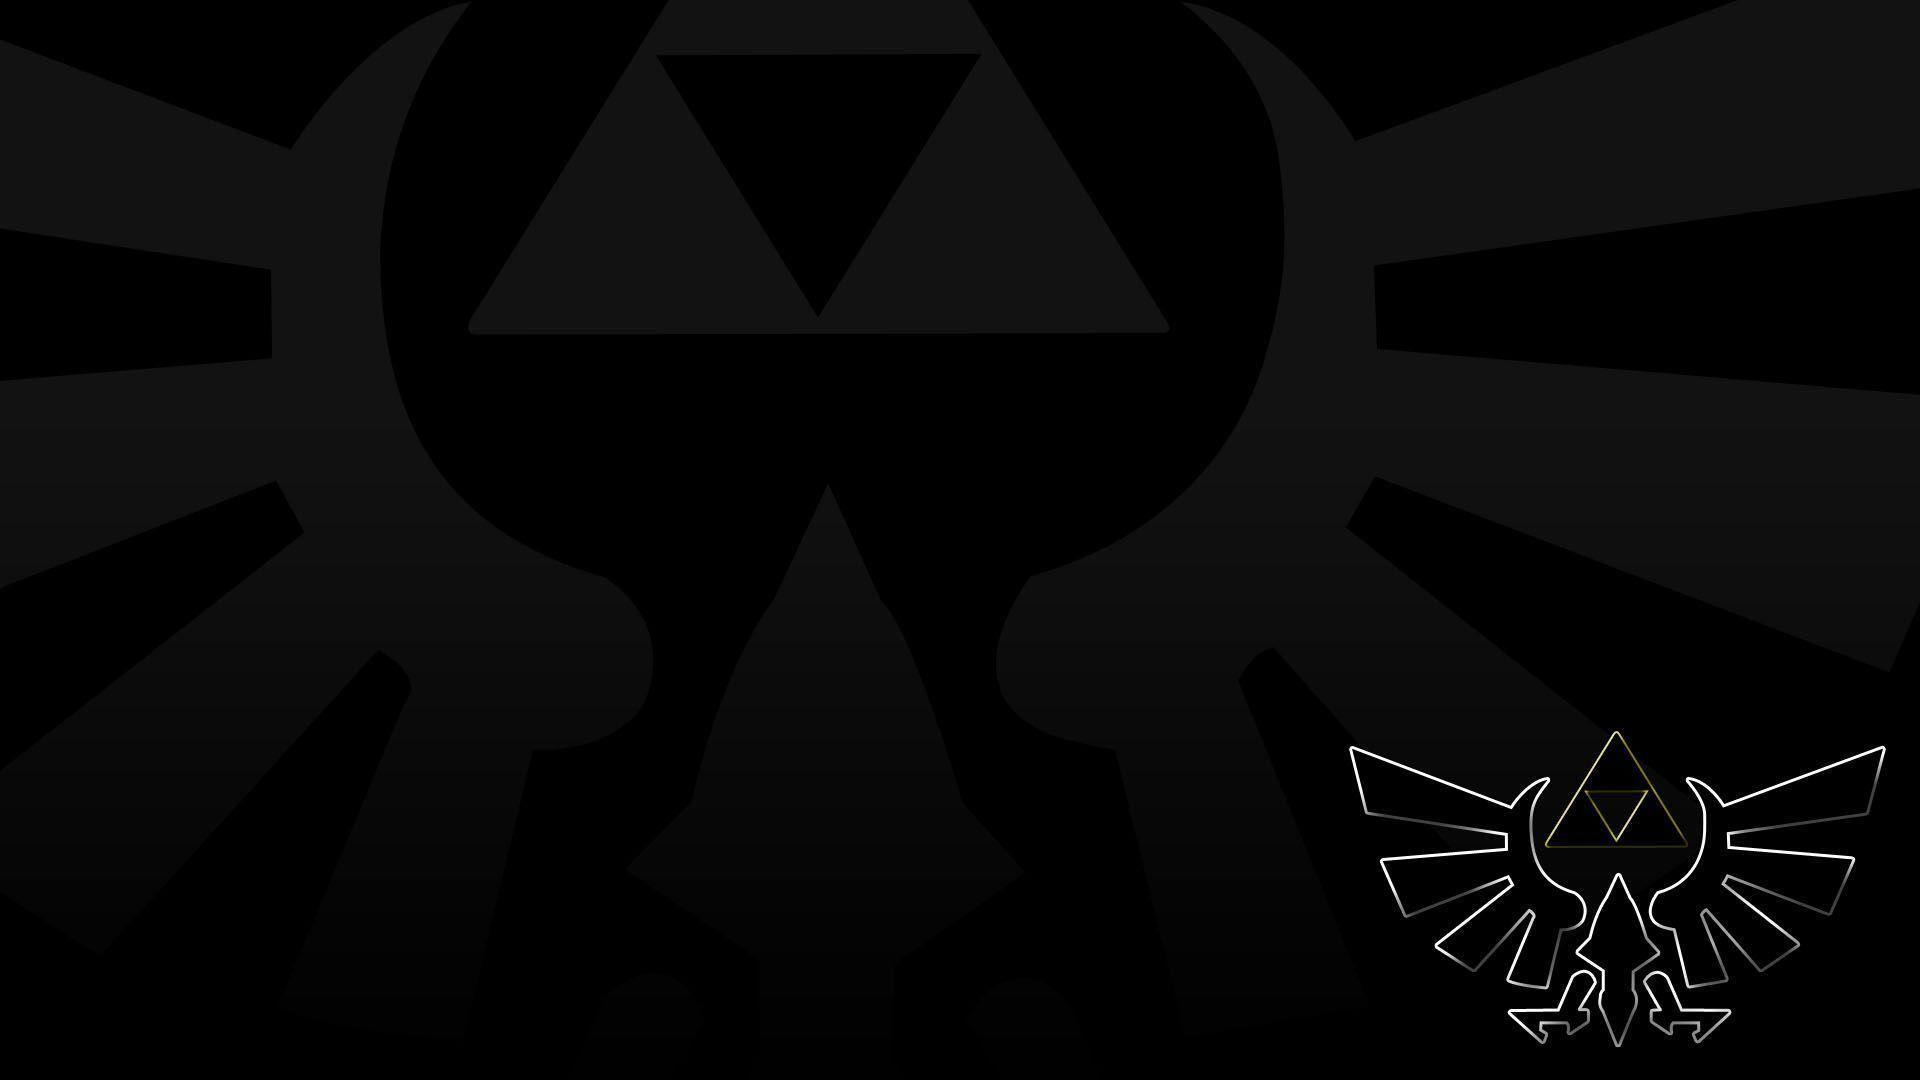 Triforce Wallpaper, wallpaper, Triforce Wallpapers hd wallpapers